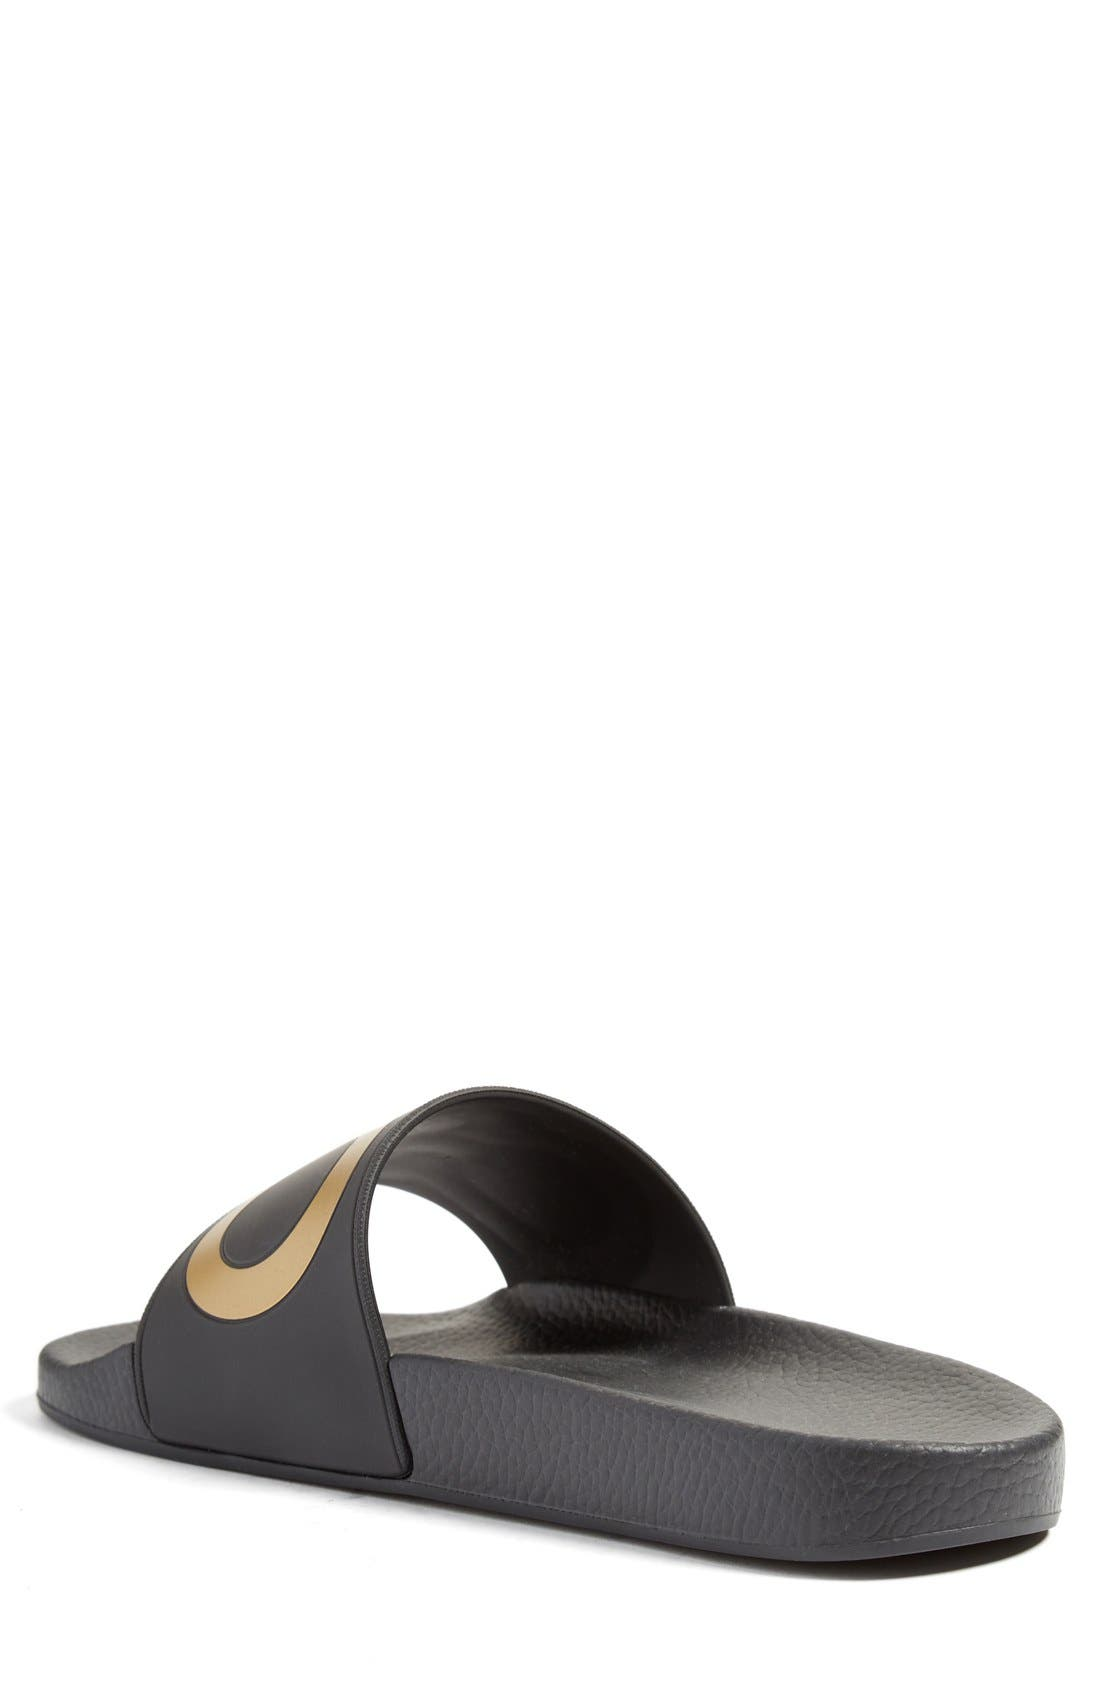 Alternate Image 2  - Salvatore Ferragamo 'Groove' Slide Sandal (Men)